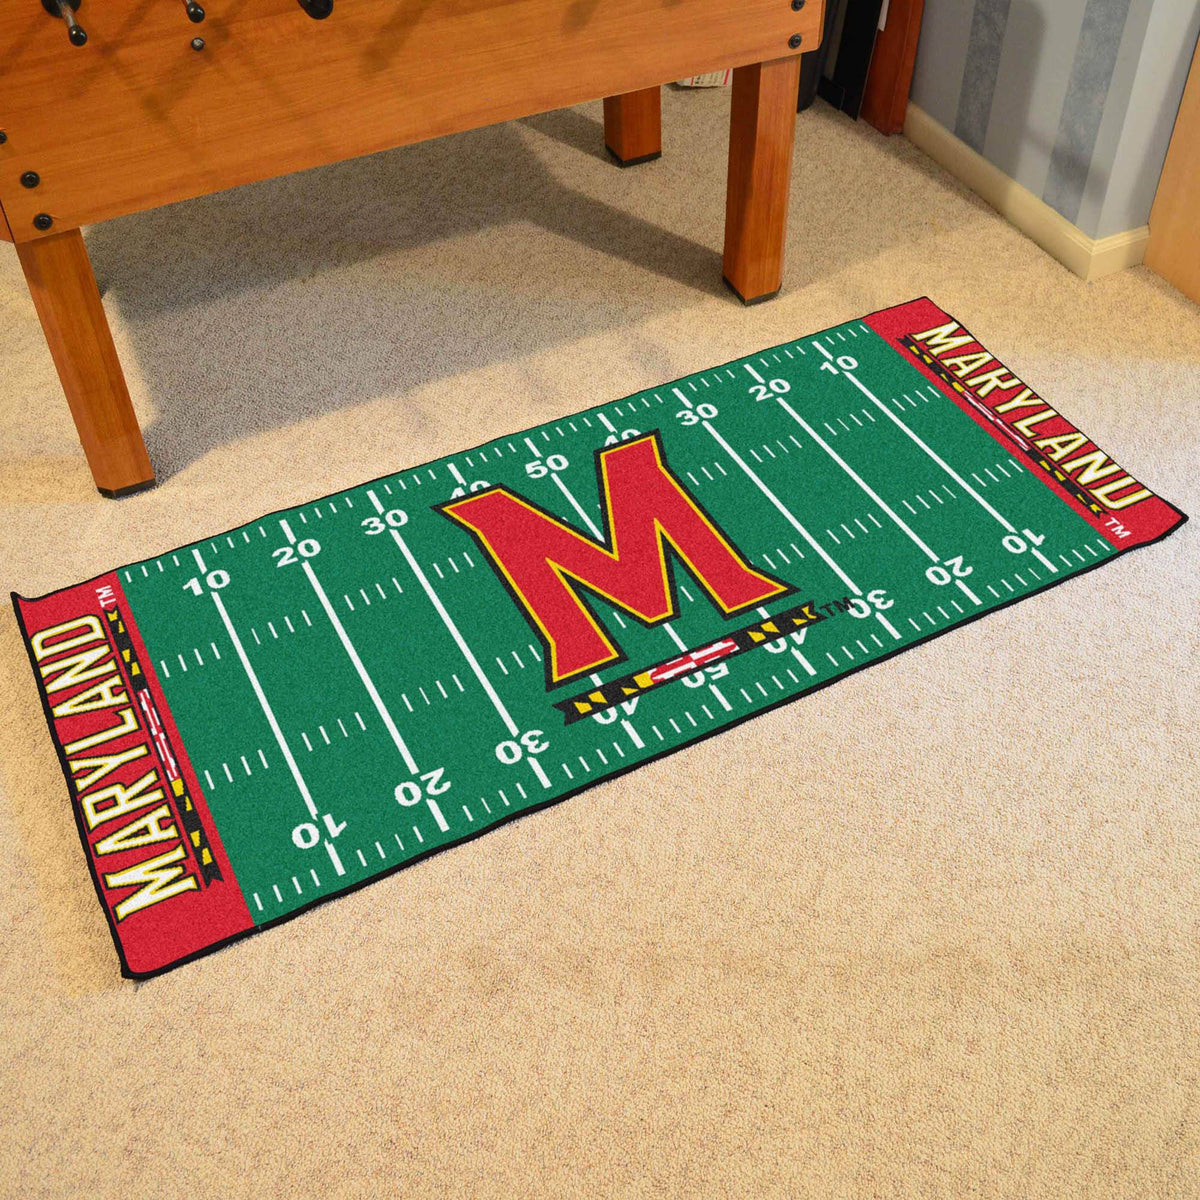 Collegiate - Football Field Runner Collegiate Mats, Rectangular Mats, Football Field Runner, Collegiate, Home Fan Mats Maryland